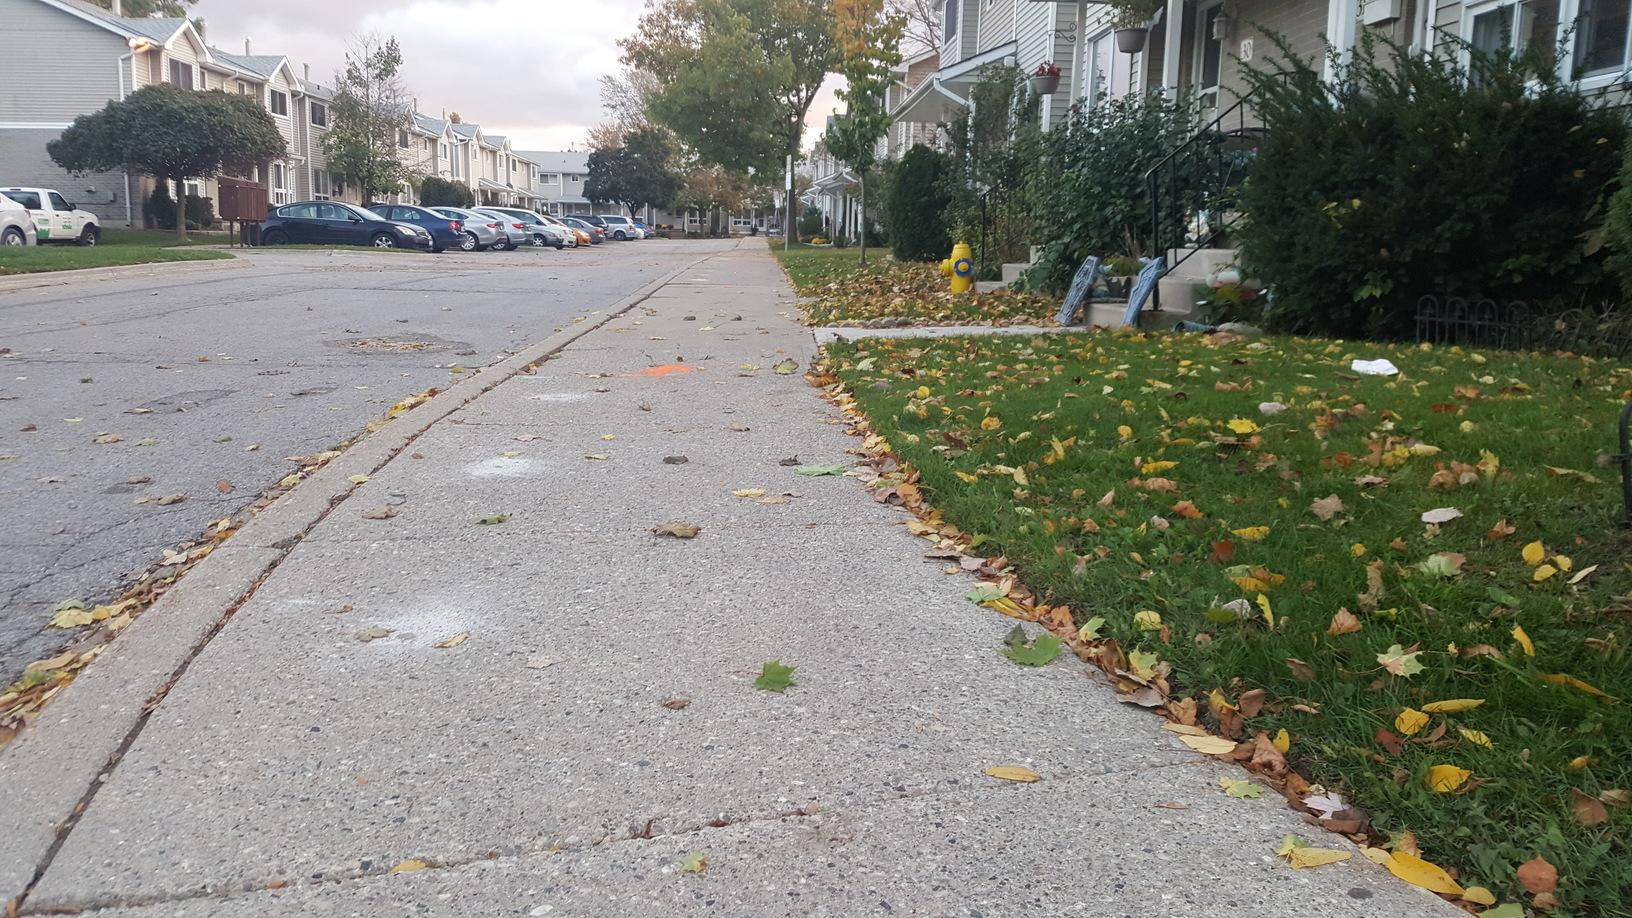 Sidewalk leveling in London, Ontario - After Photo